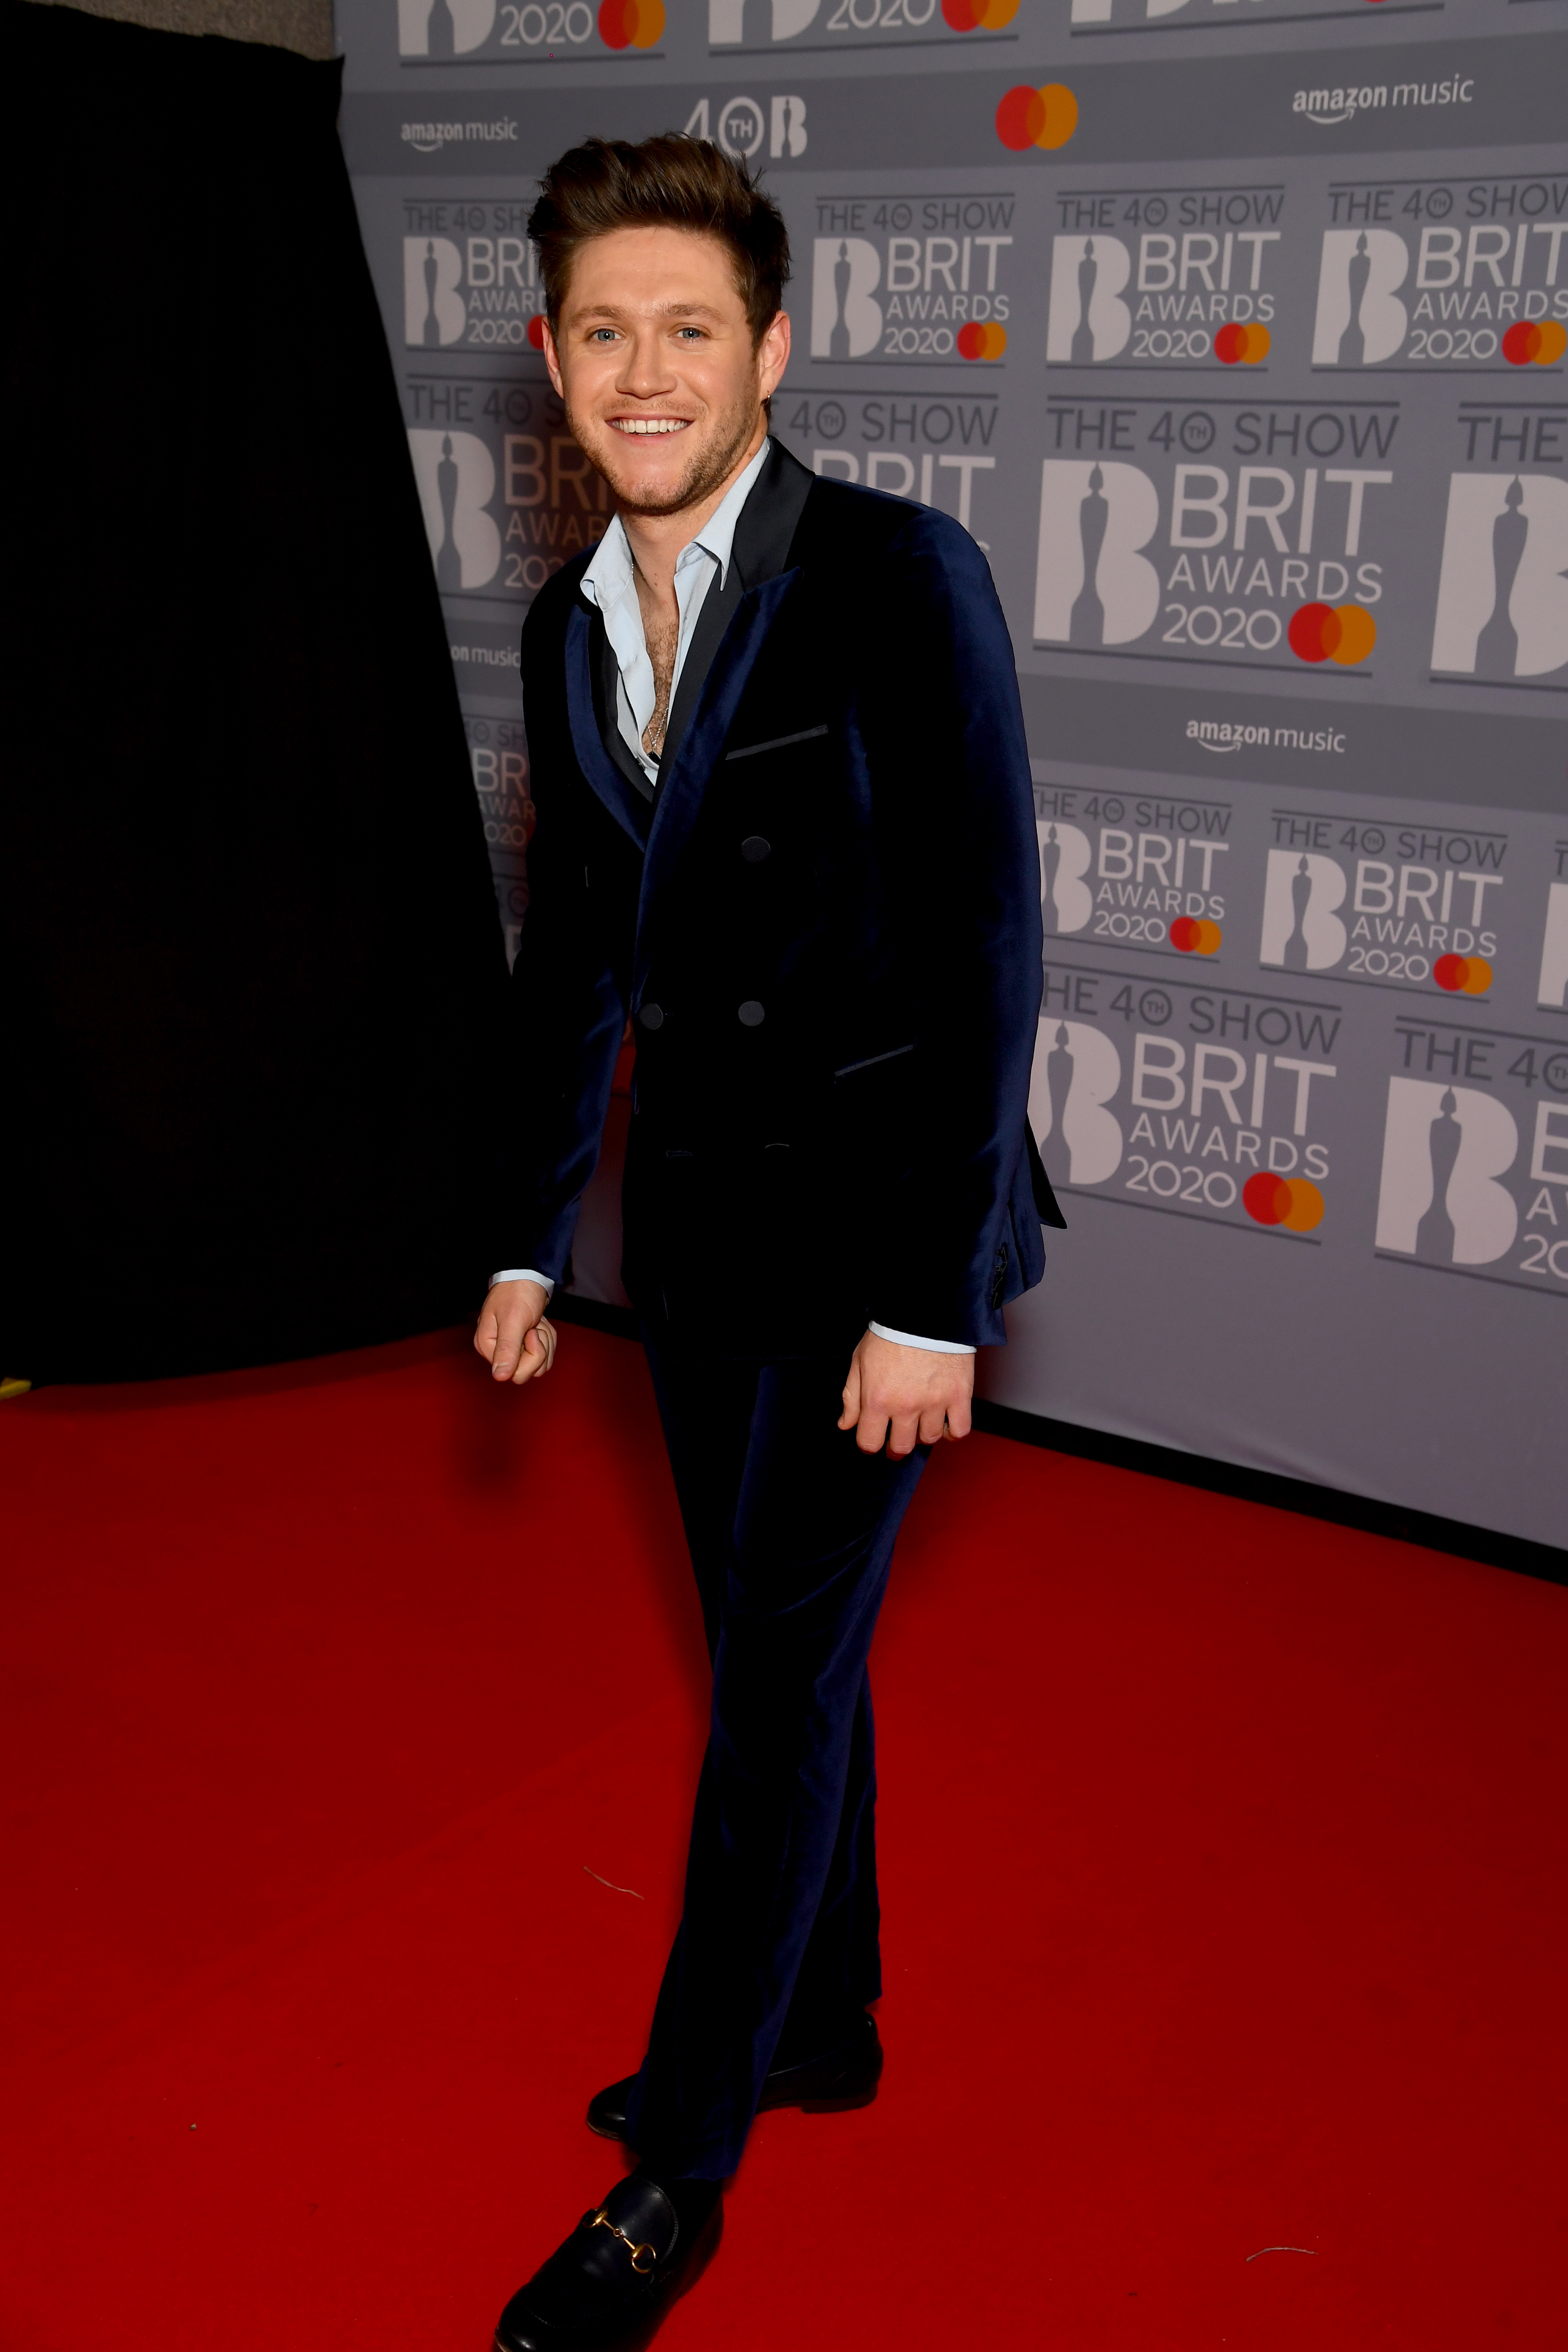 Niall Horan attends The BRIT Awards 2020 at The O2 Arena on February 18, 2020 in London, England. (Photo by Dave J Hogan/Getty Images)